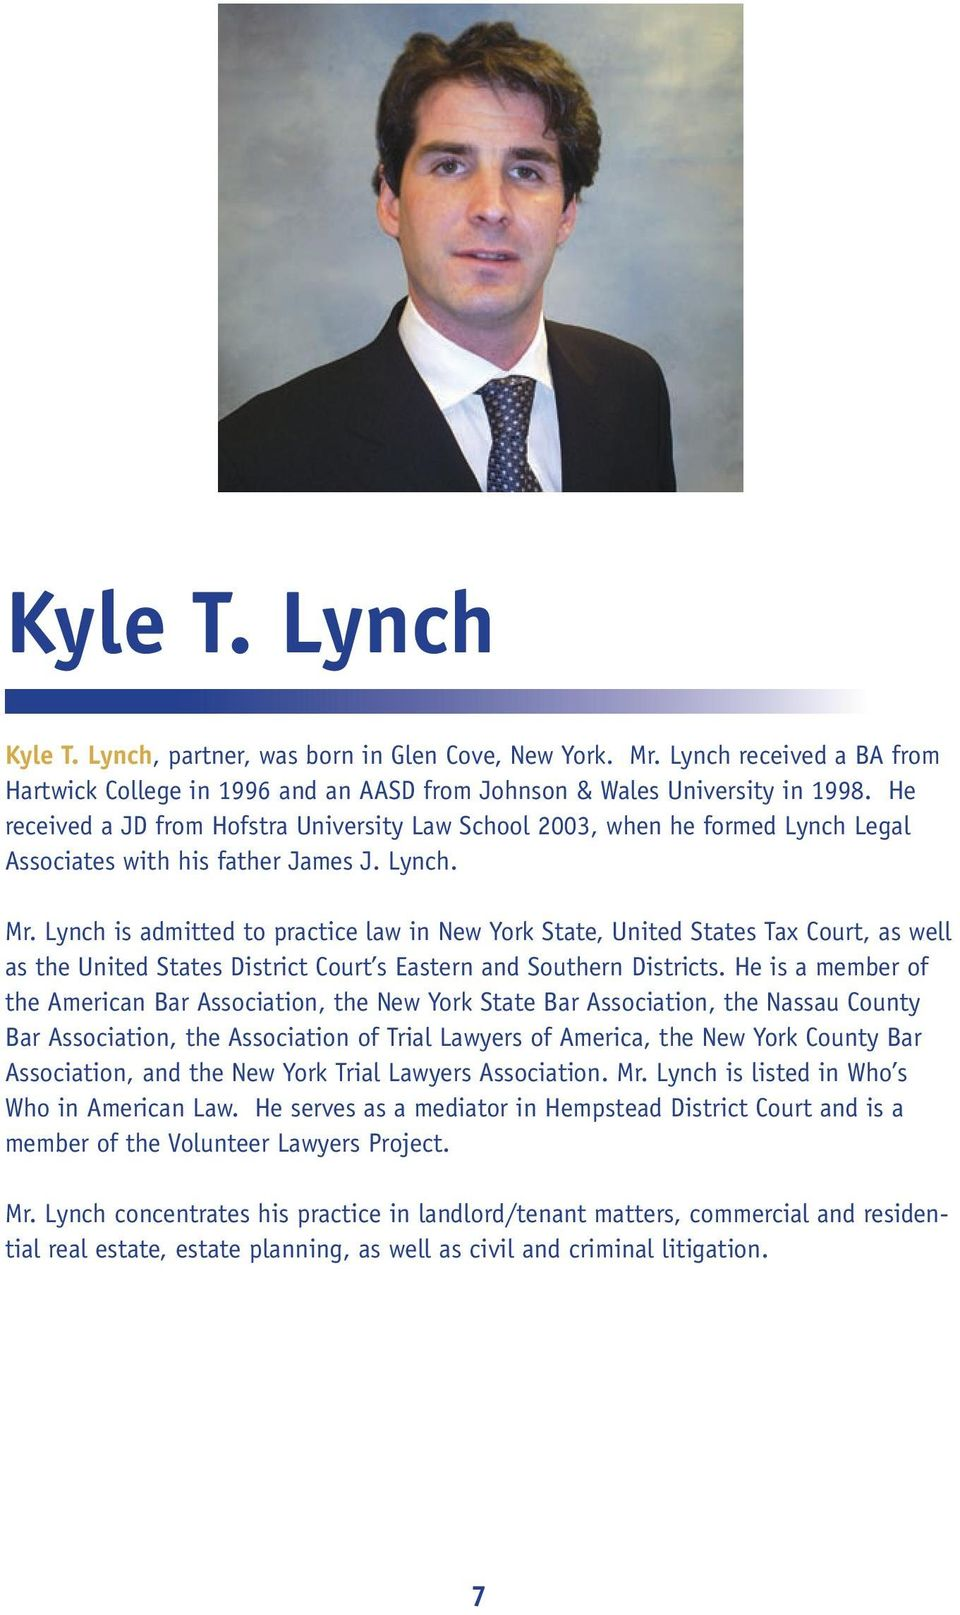 Lynch is admitted to practice law in New York State, United States Tax Court, as well as the United States District Court s Eastern and Southern Districts.